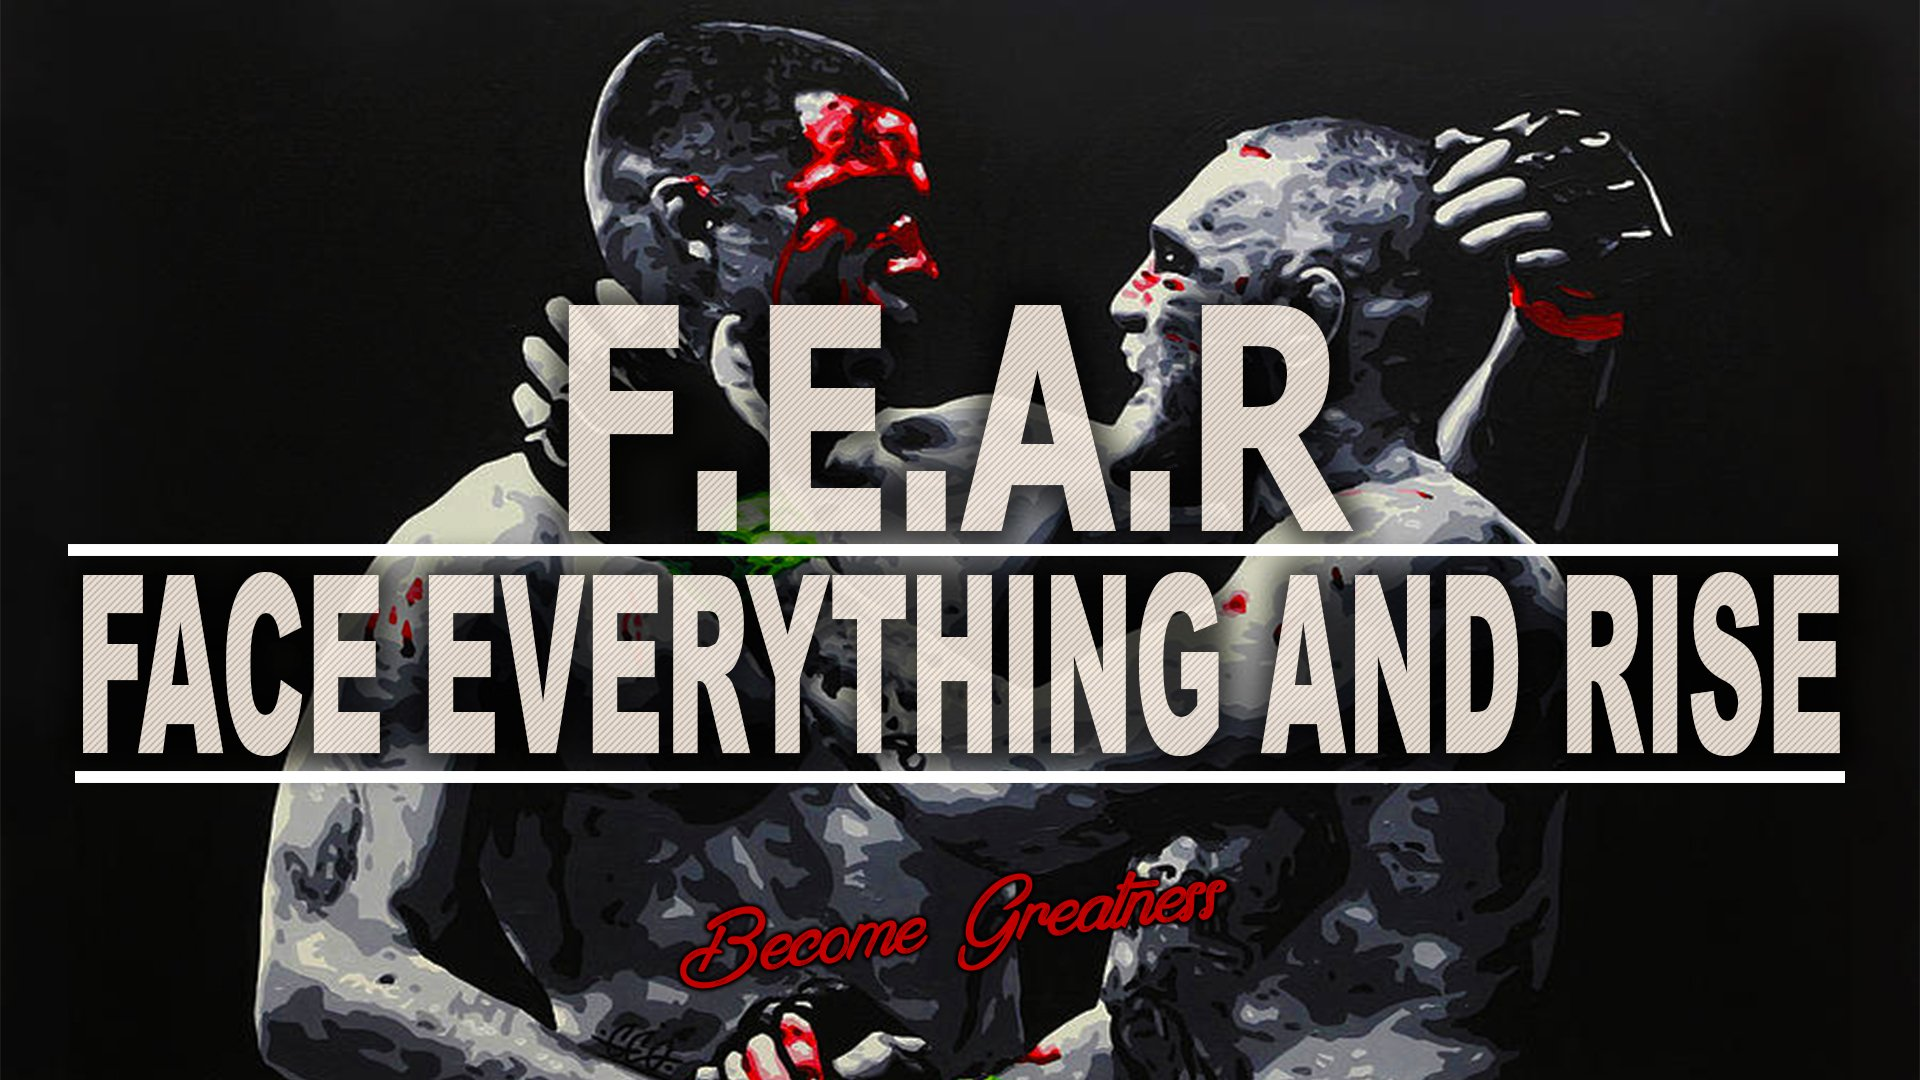 Best Gym Quotes Wallpapers Conor Mcgregor Nate Diaz Inspirational Motivational